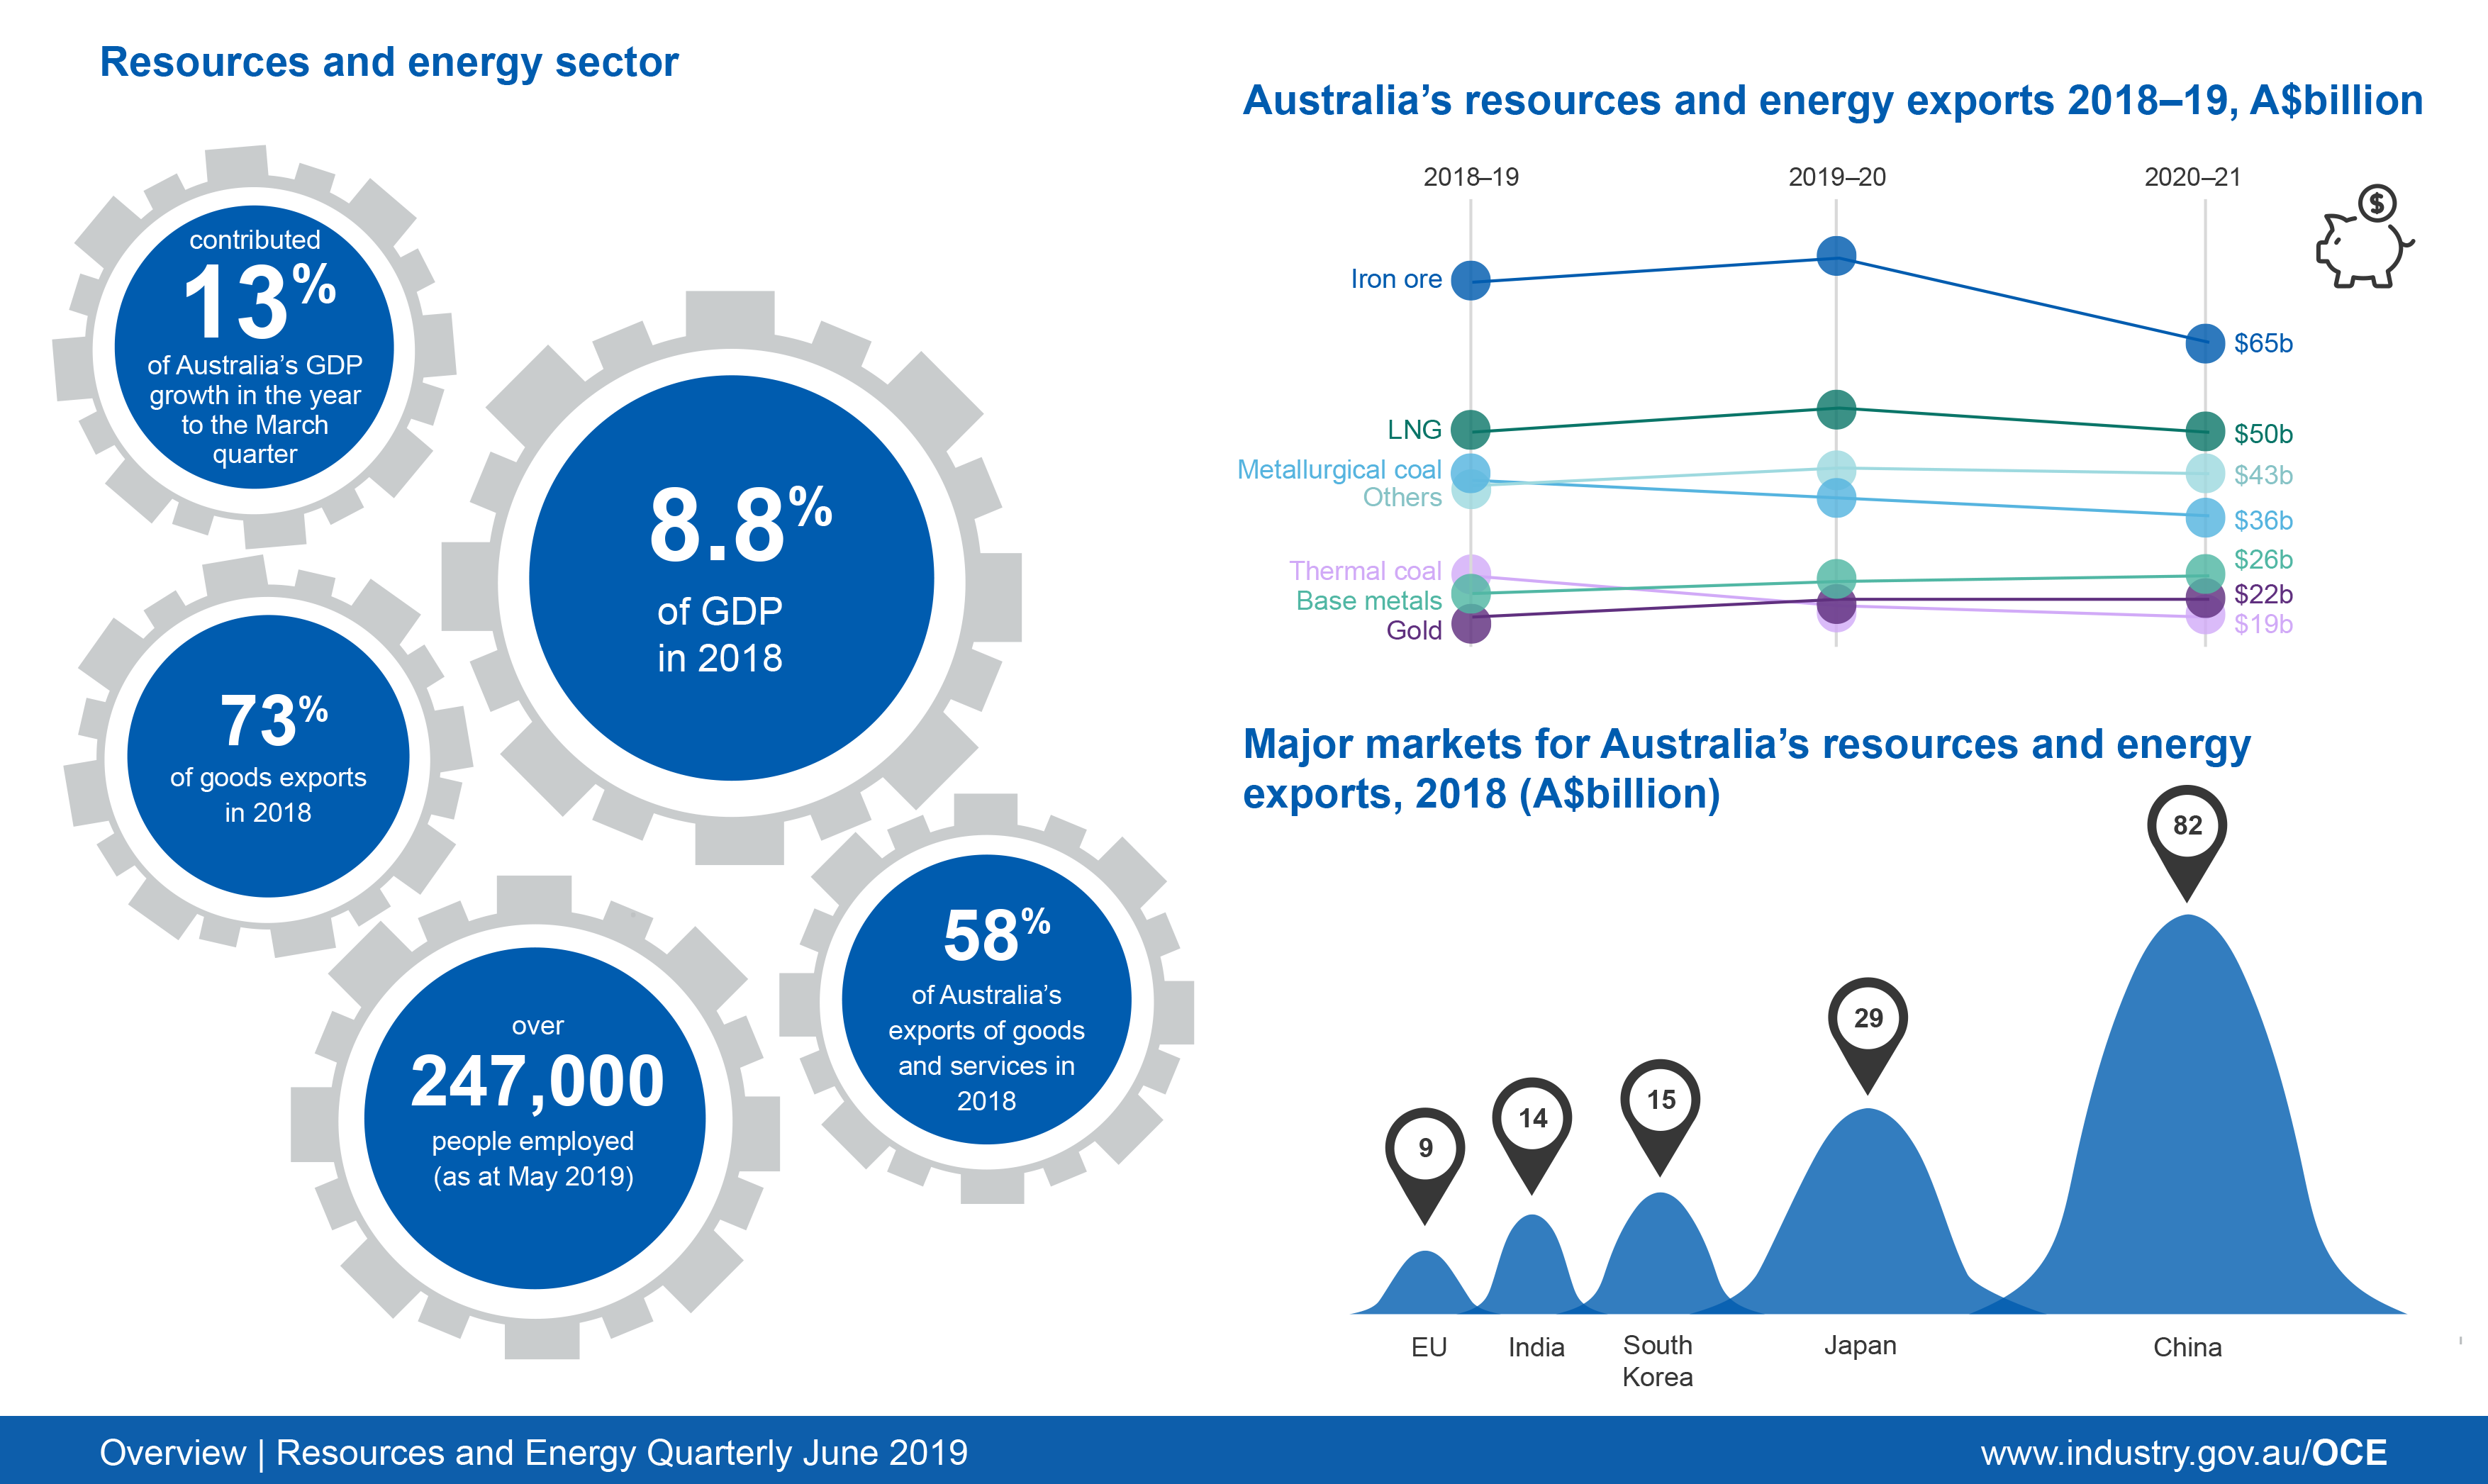 Australia's resource and energy export earnings in billions 2018-2019 infographic